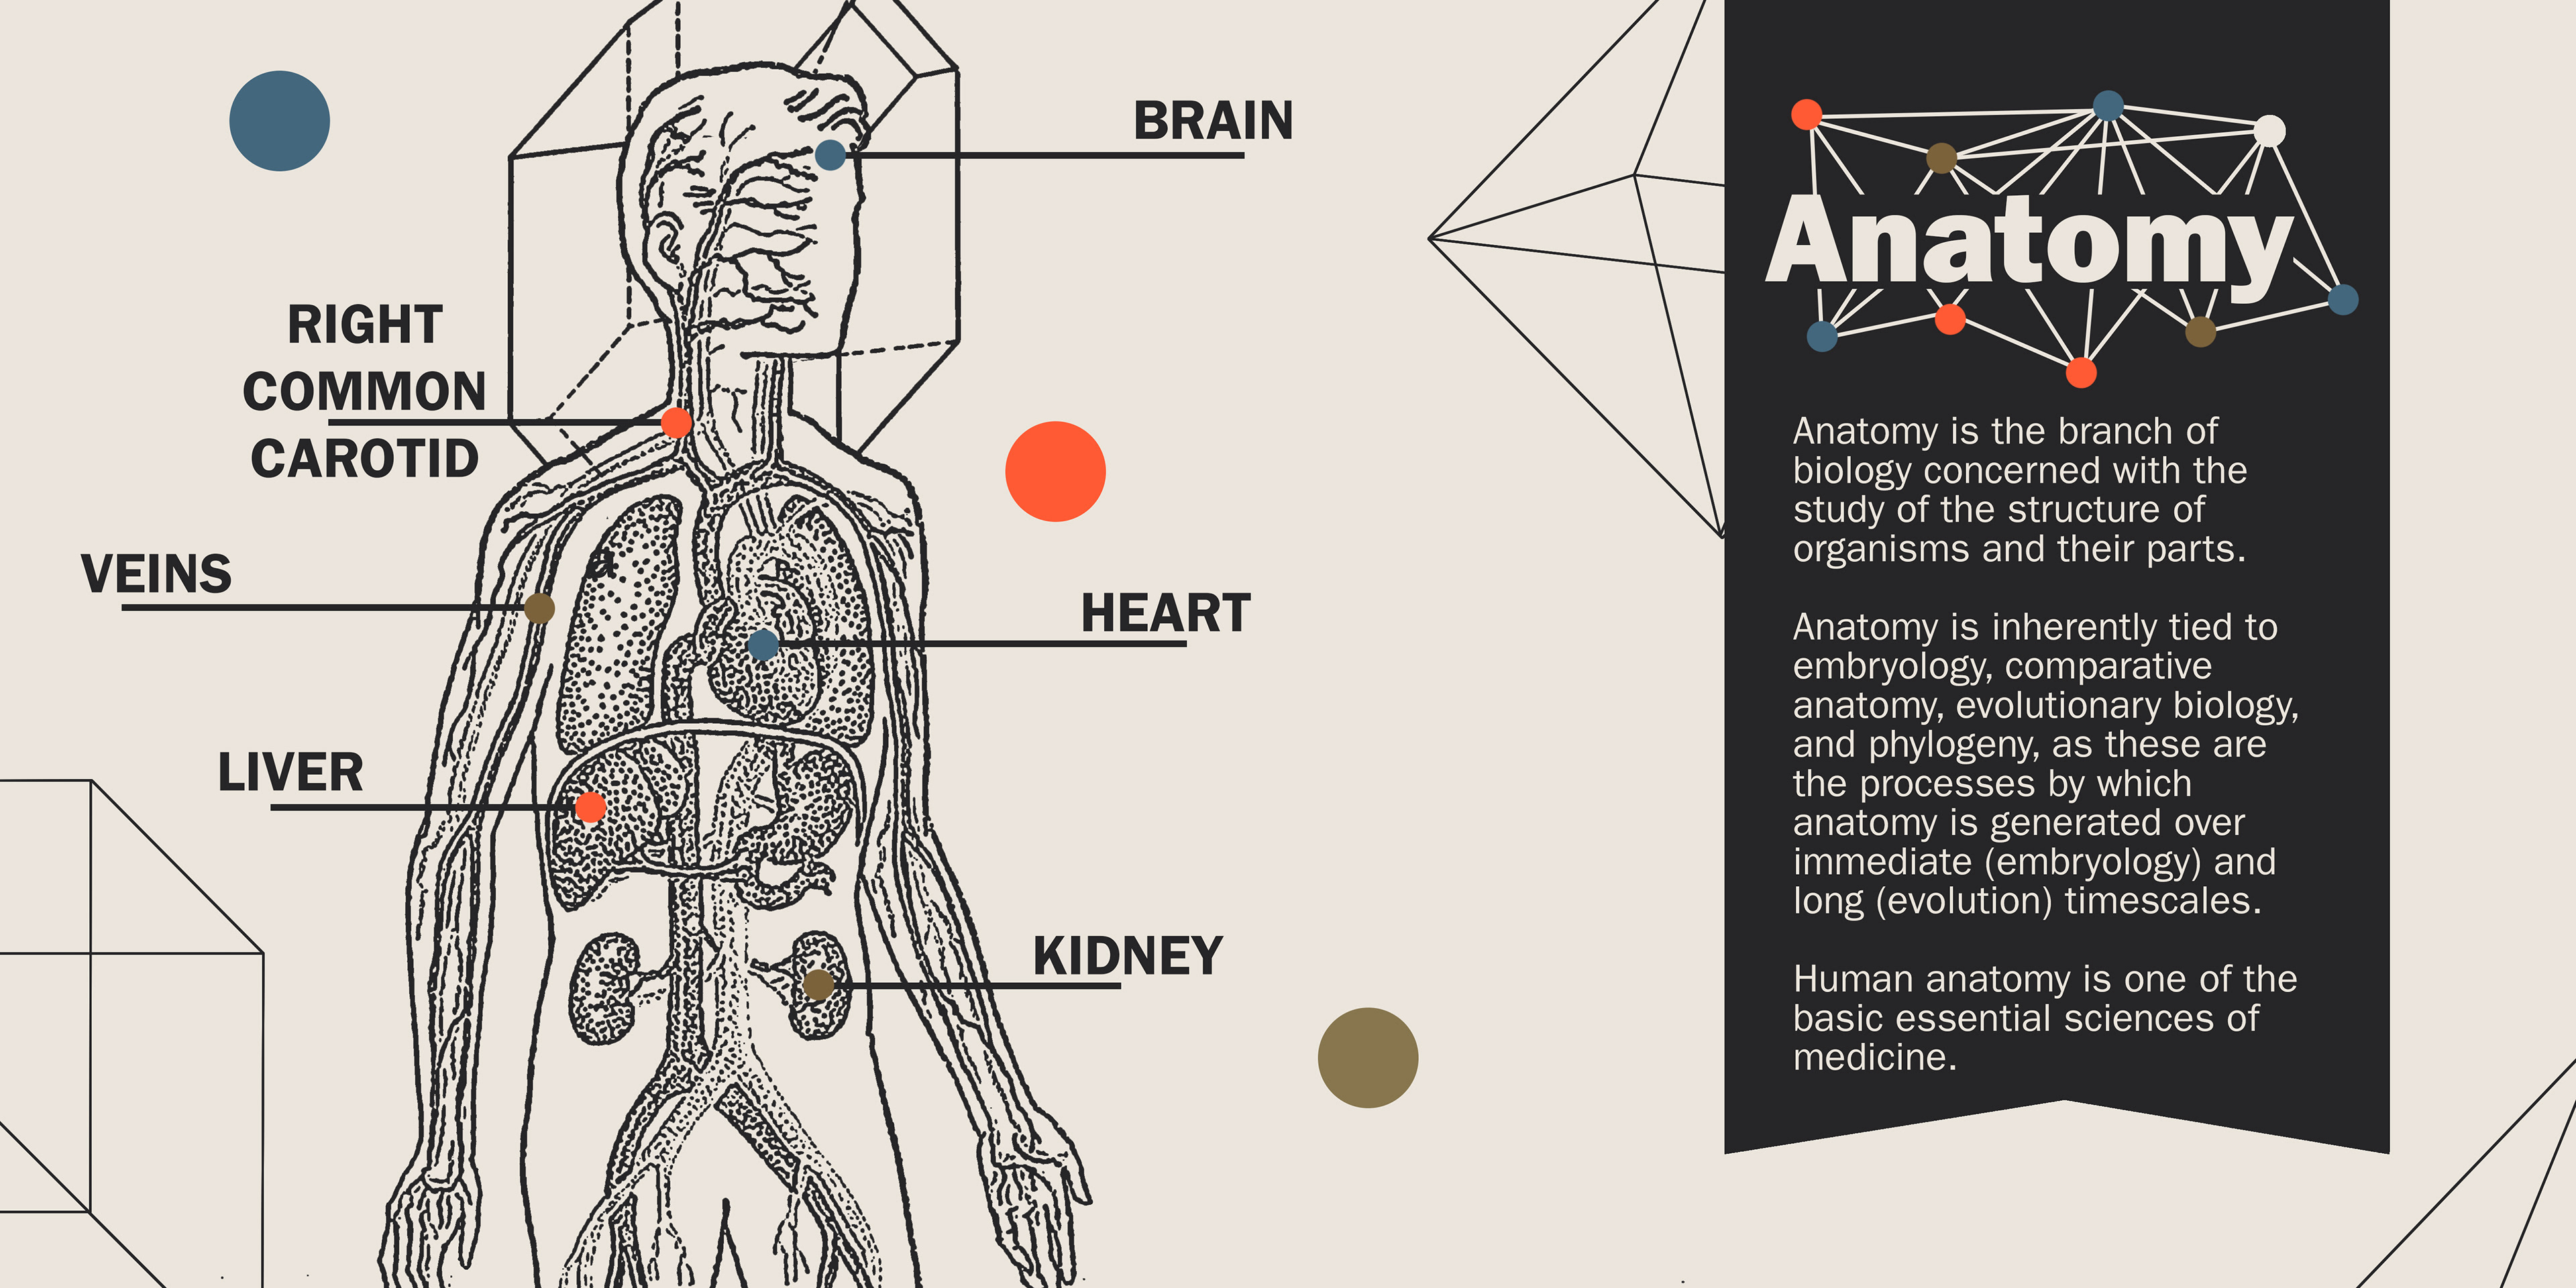 Comparative Anatomy Evolution Images Human Anatomy Diagram Organs